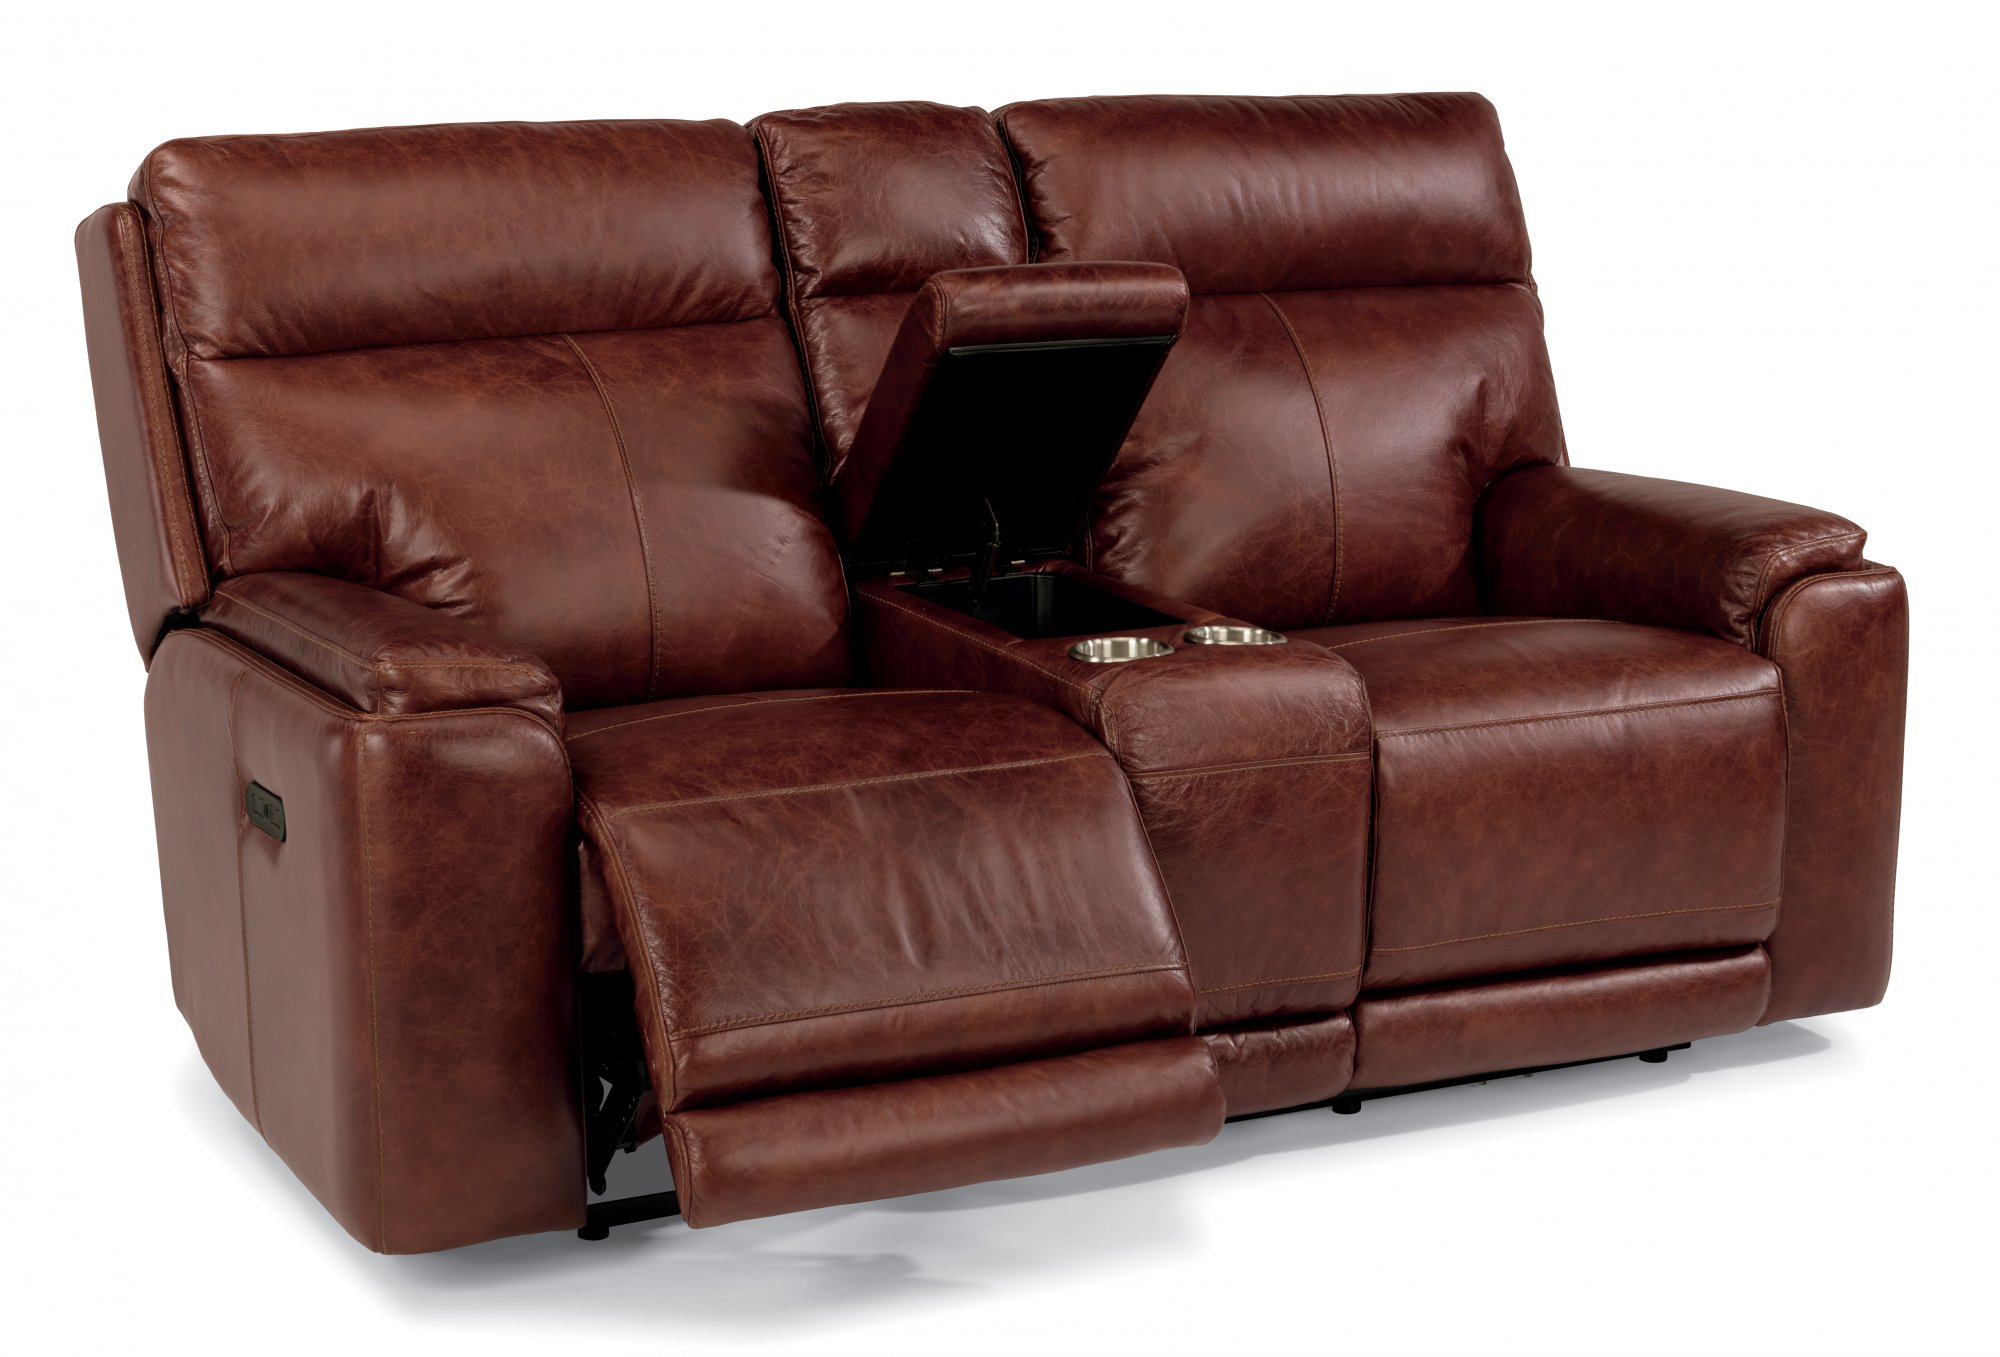 Flexsteel Sienna  Leather Power Reclining Loveseat with Console and Power Headrests